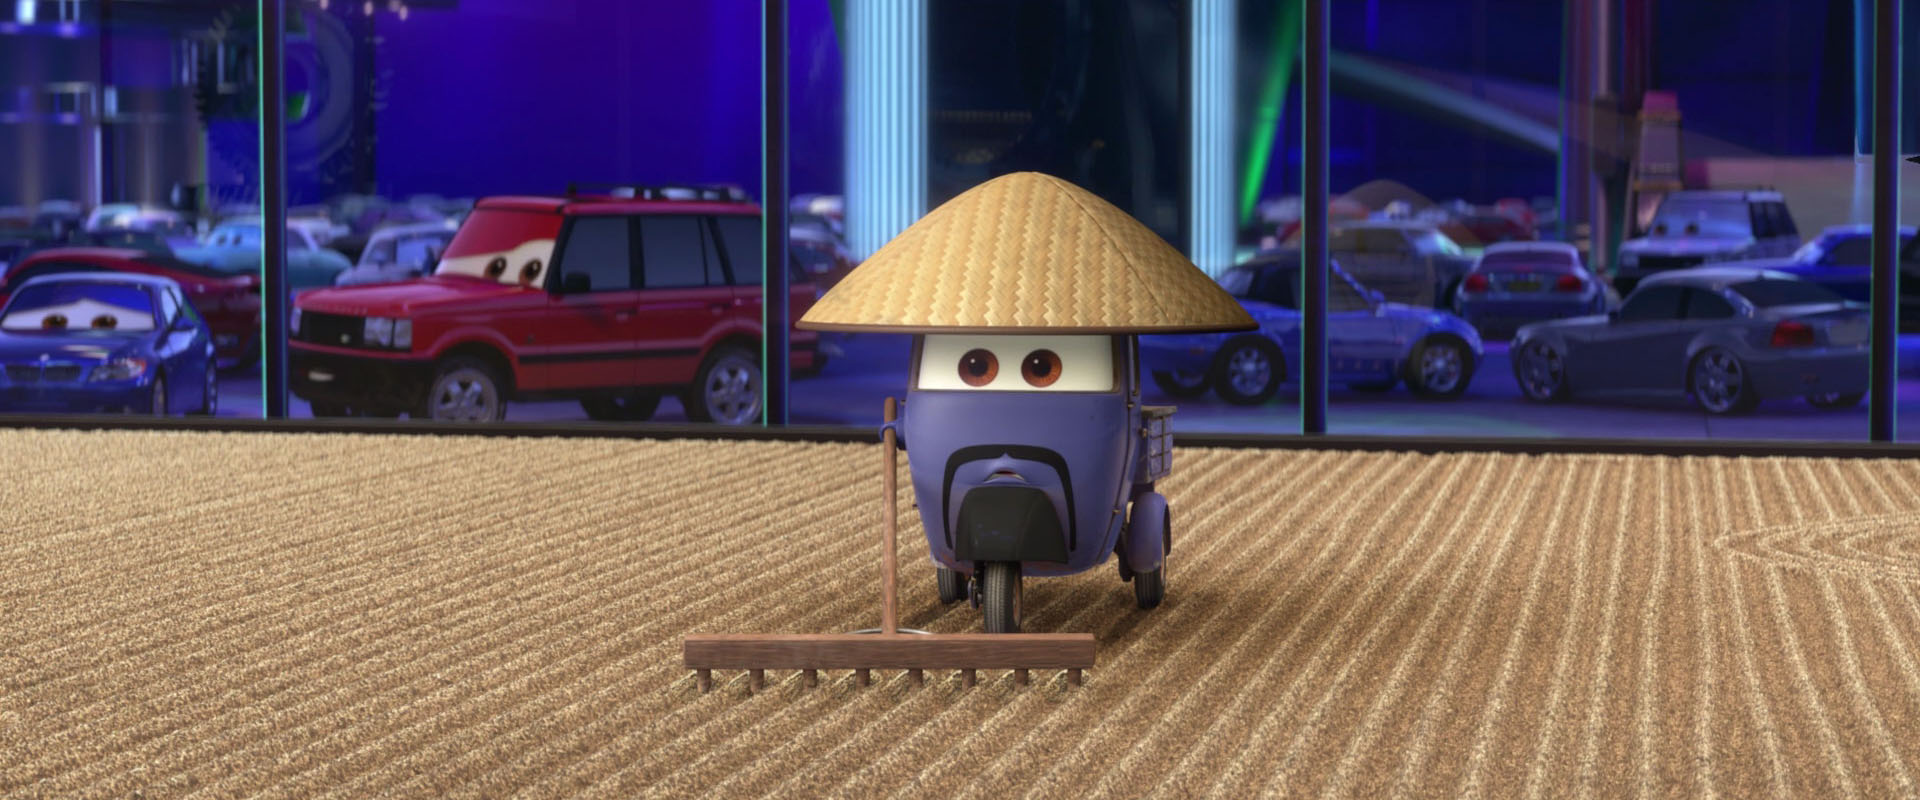 zen-master-personnage-cars-2-01